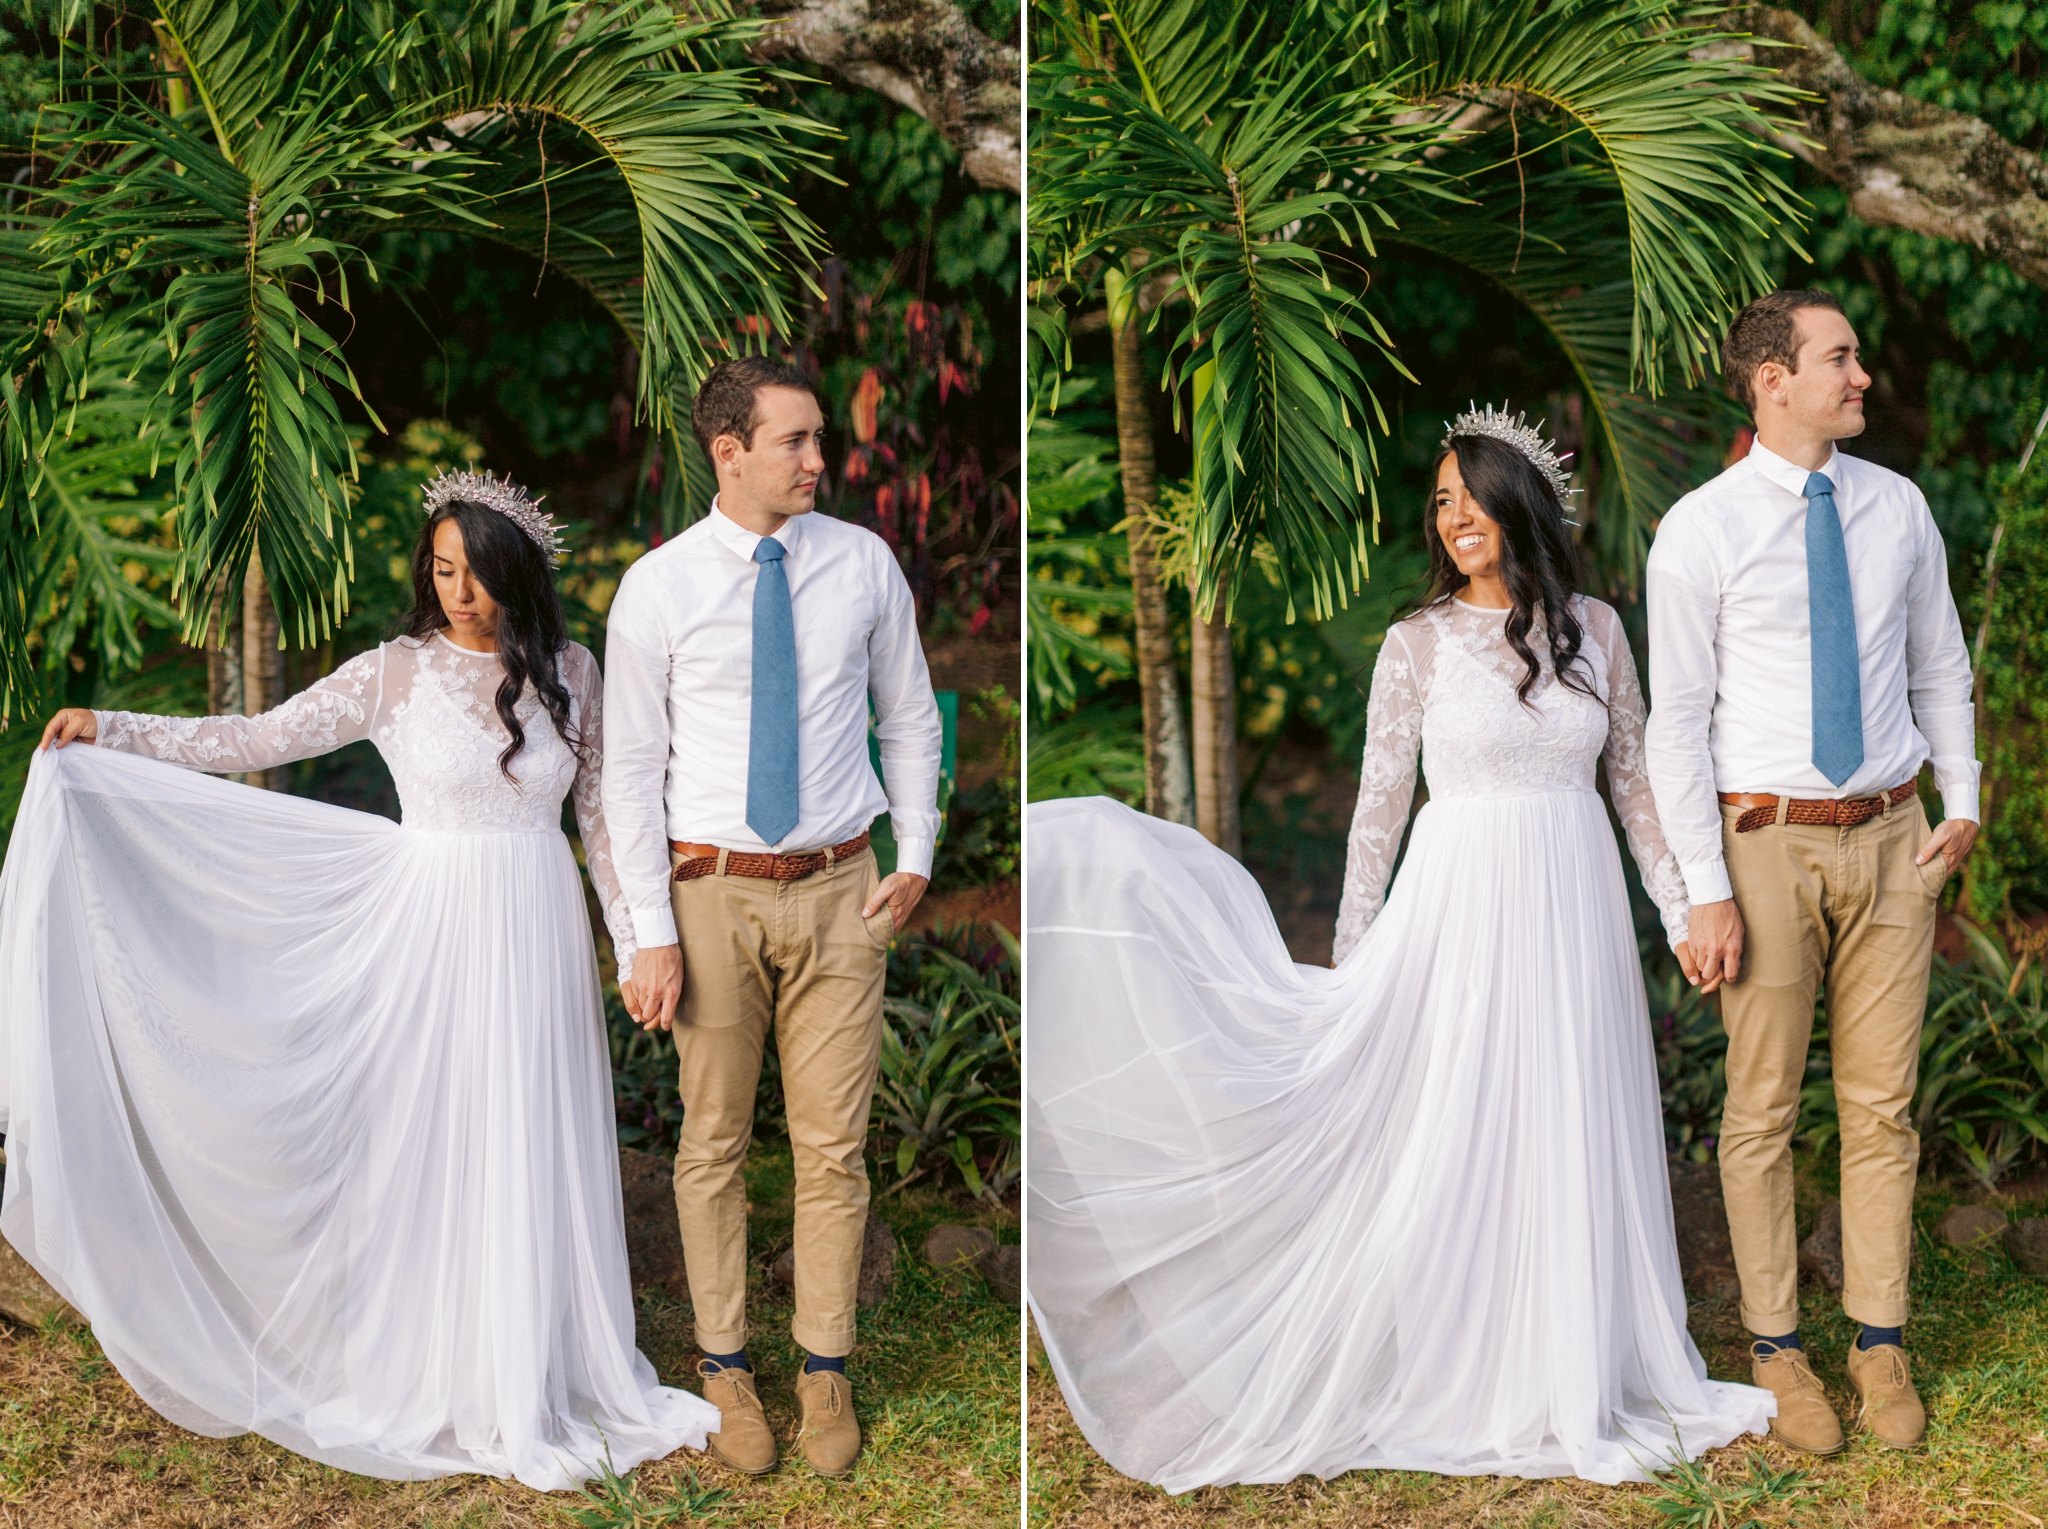 Bride playing with her asos wedding dress underneath palm trees while holding hands with her groom Ana + Elijah - Wedding at Loulu Palm in Haleiwa, HI - Oahu Hawaii Wedding Photographer - #hawaiiweddingphotographer #oahuweddings #hawaiiweddings